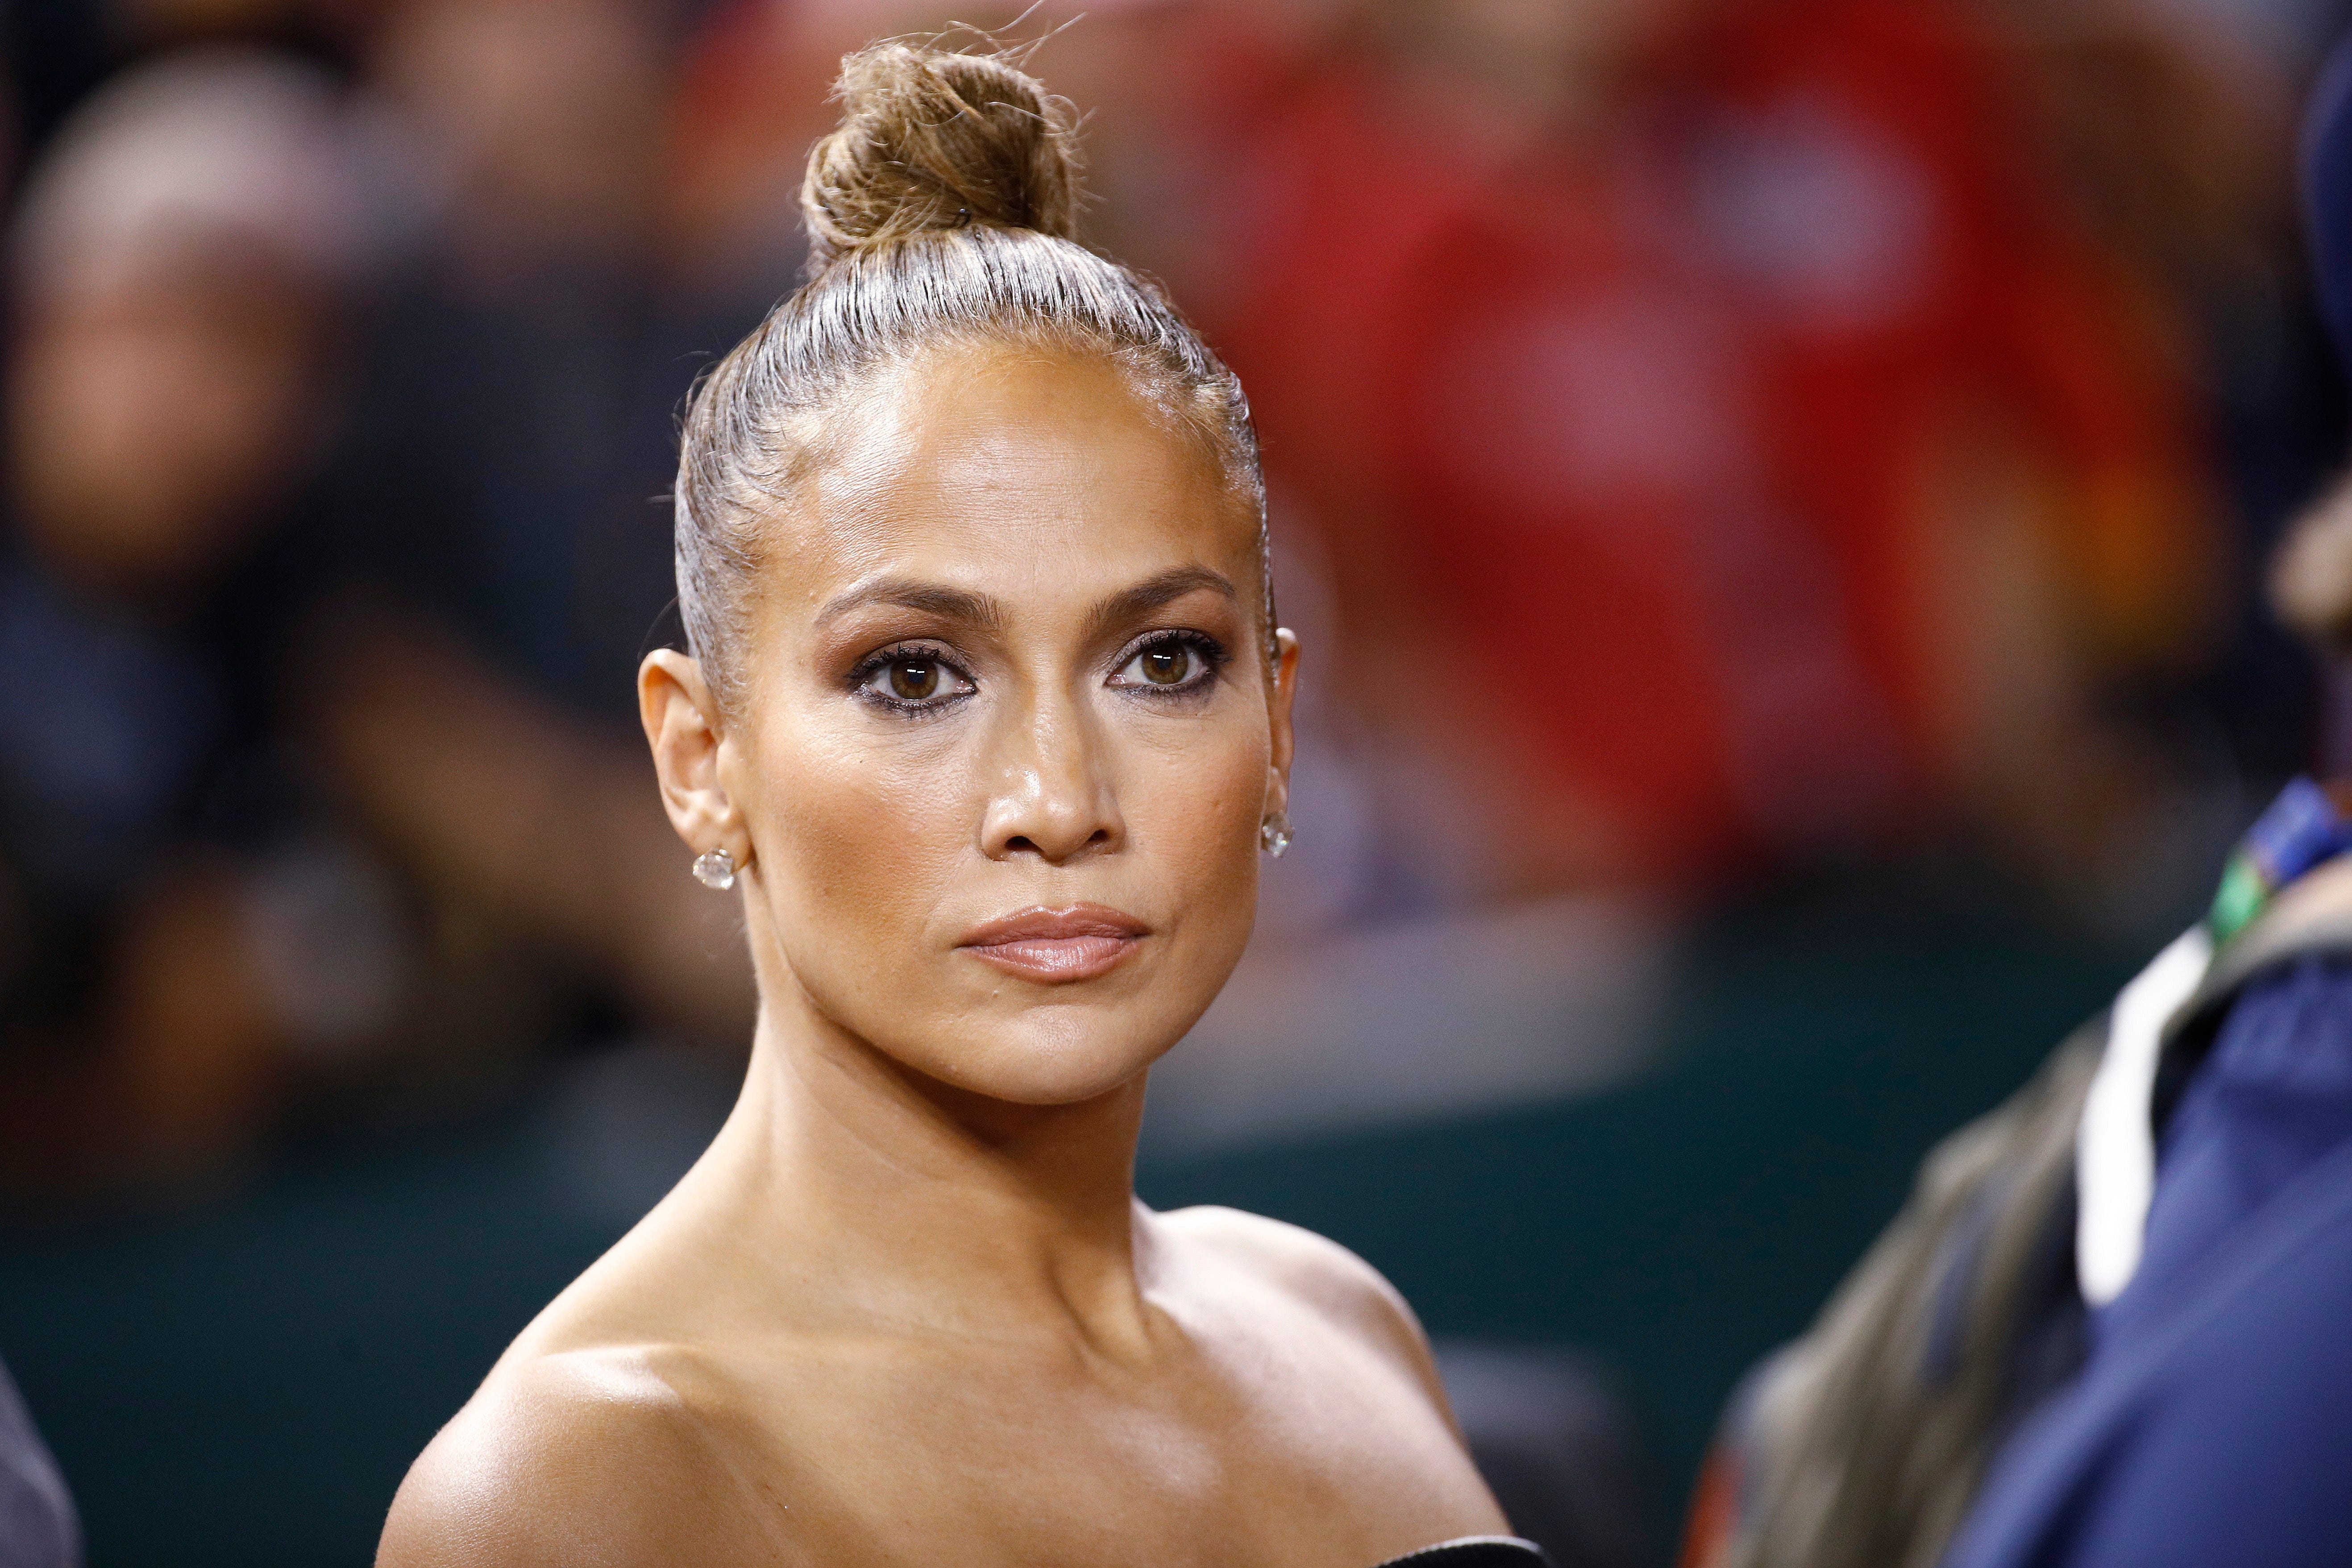 Jennifer Lopez S Boots Had Twitter Thinking Her Pants Are Falling